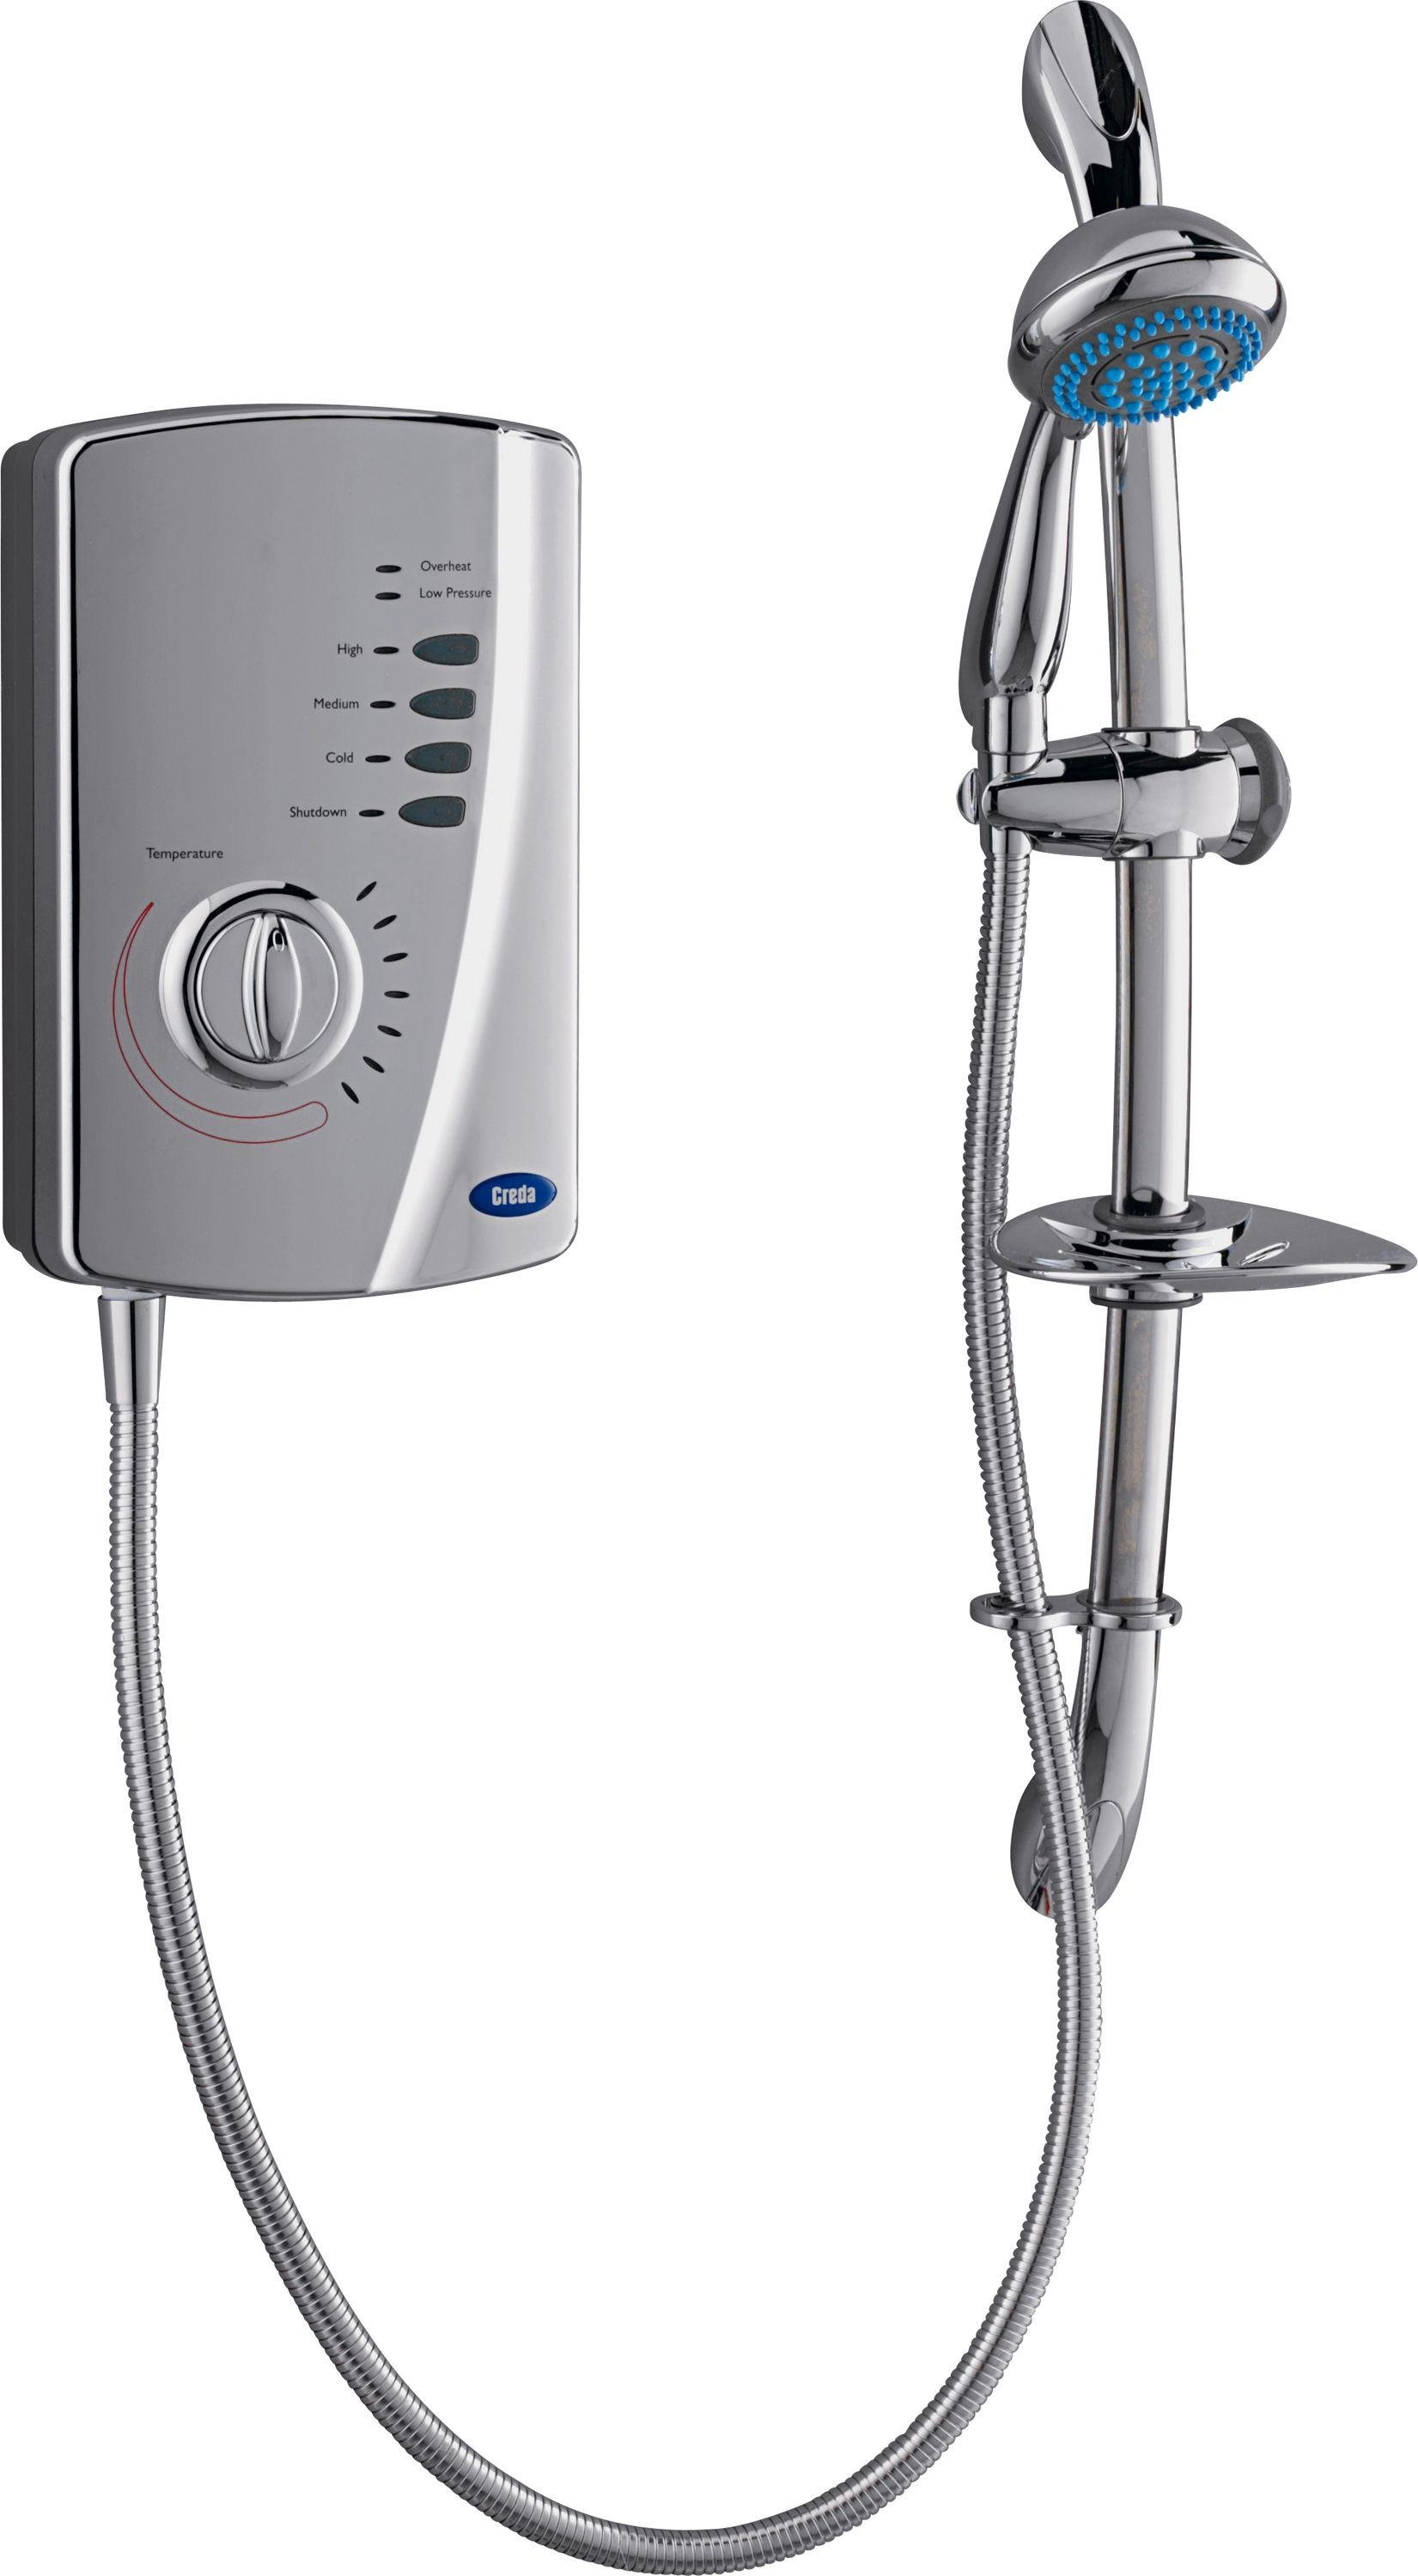 Image of Creda 550C 8.5kW Chrome Electric Shower - Silver Chrome